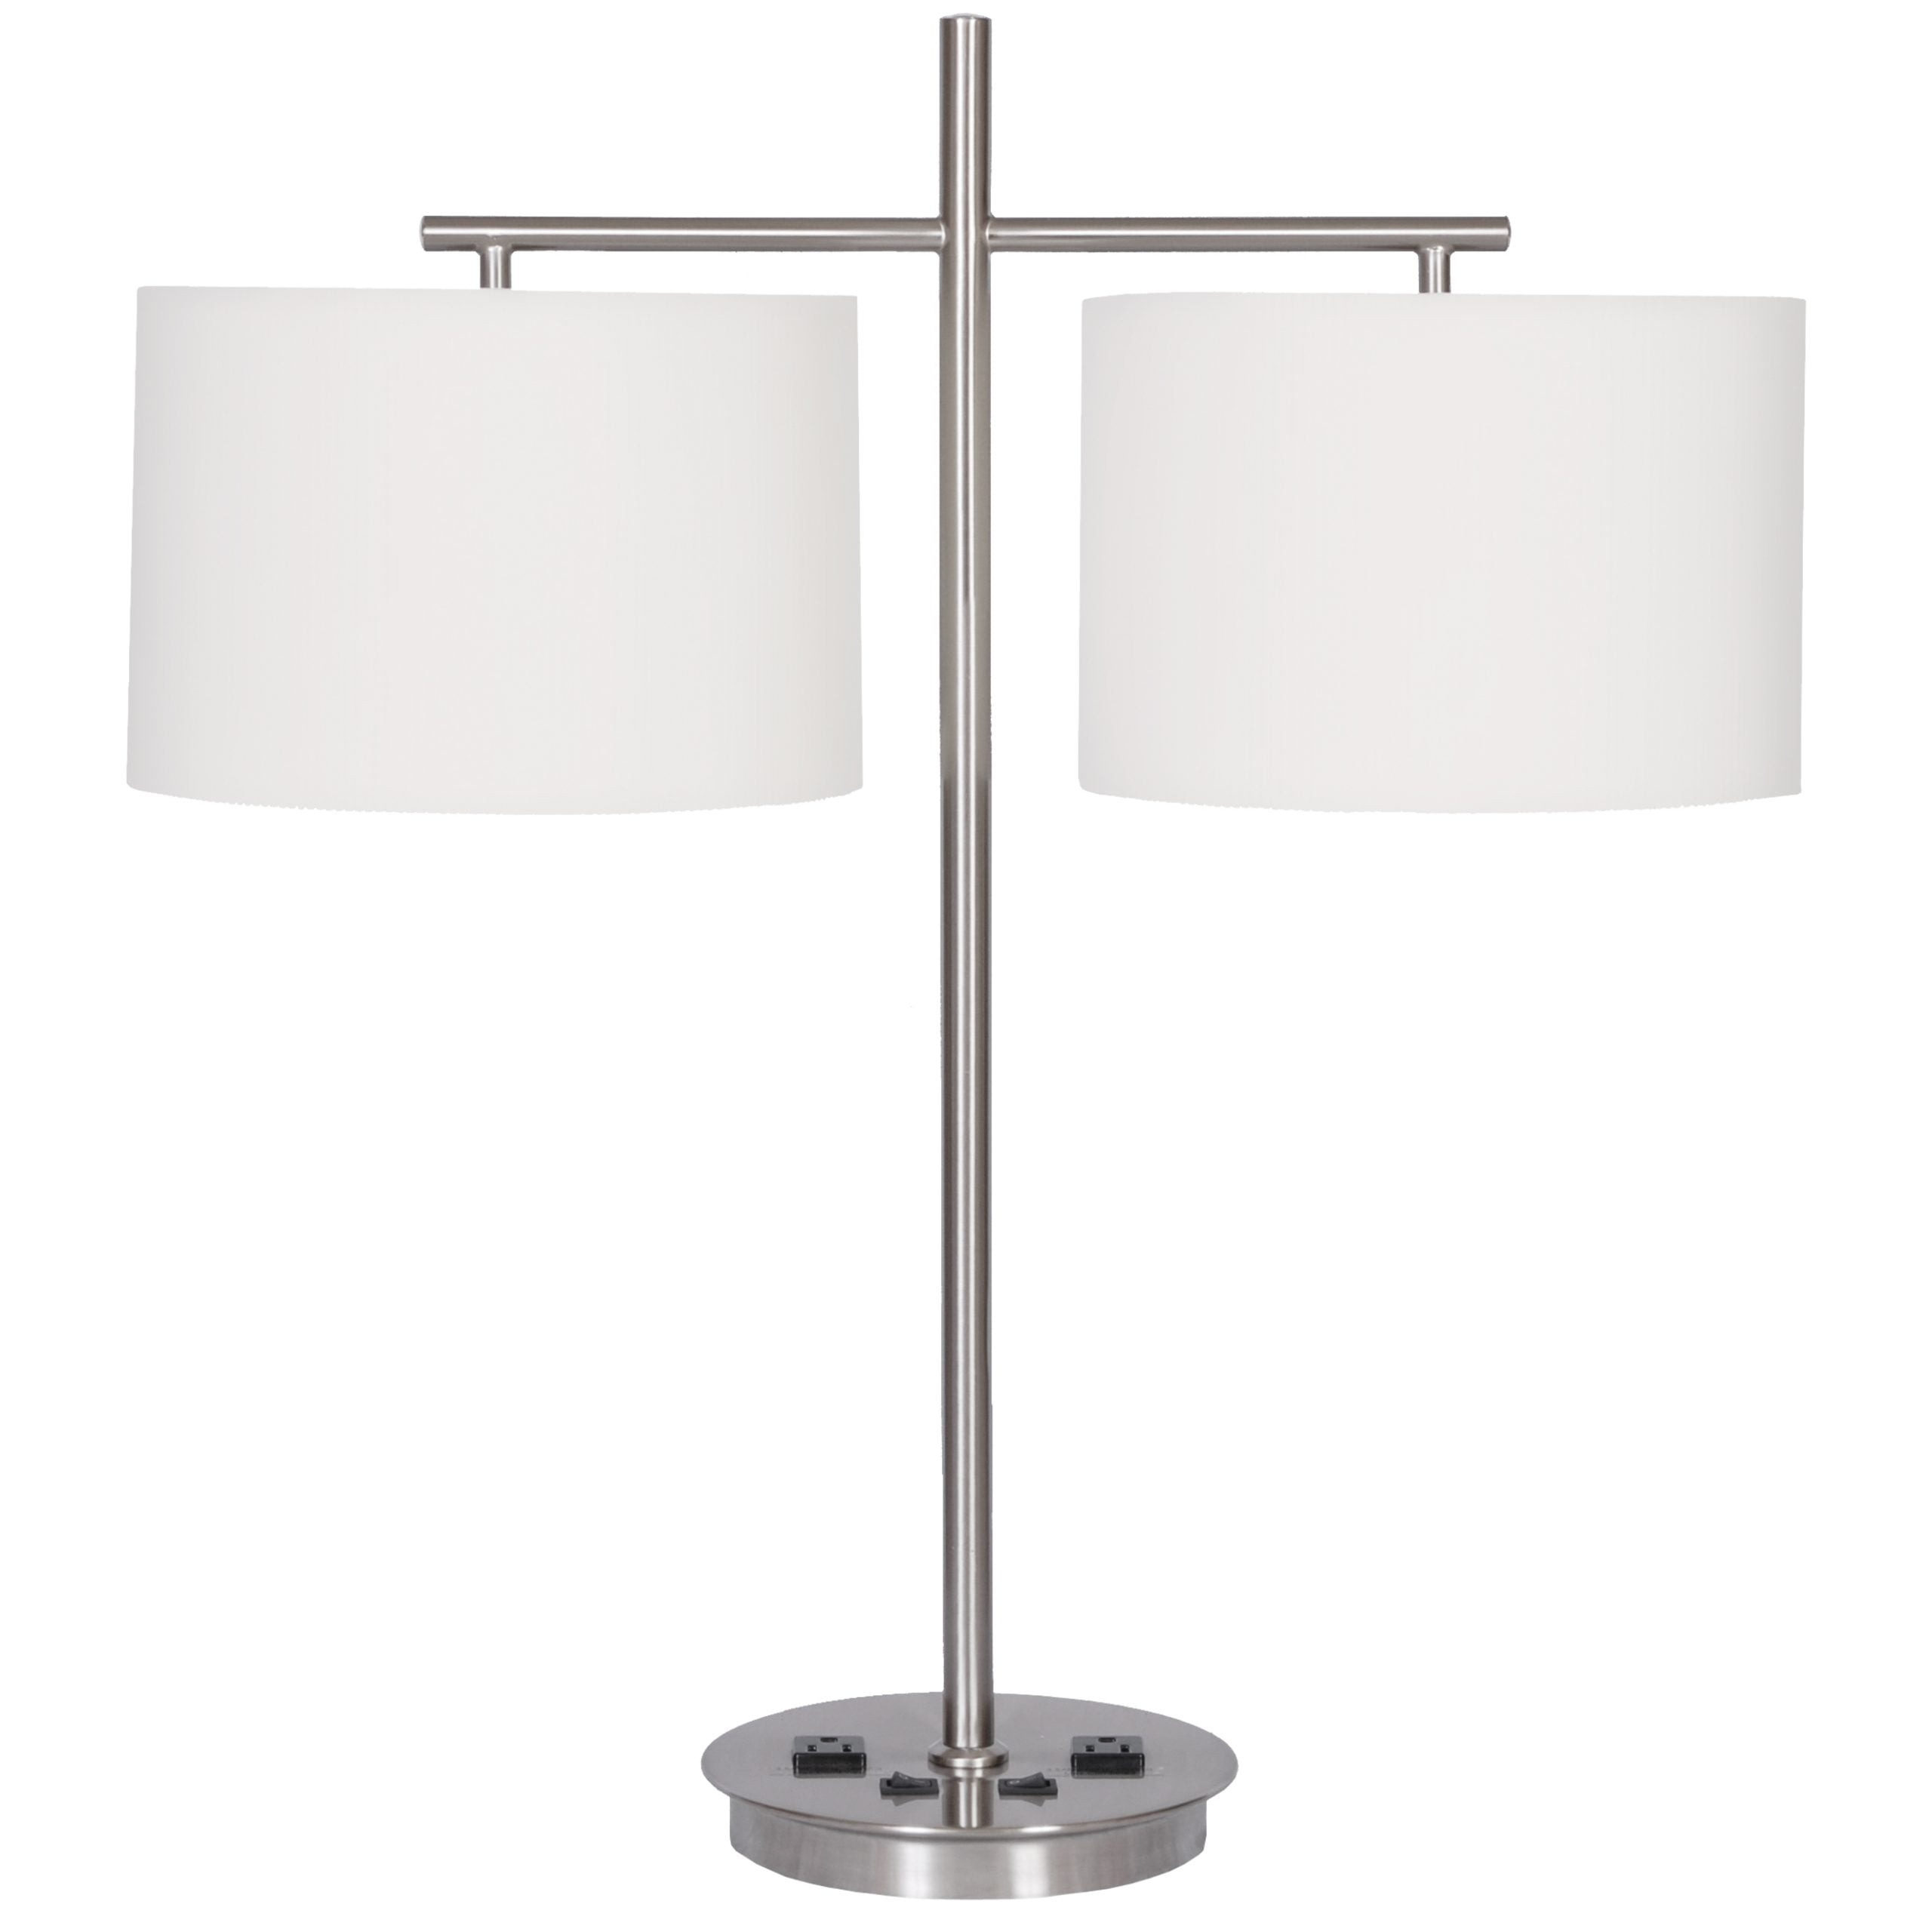 Twin Table Lamp with 2 Outlets